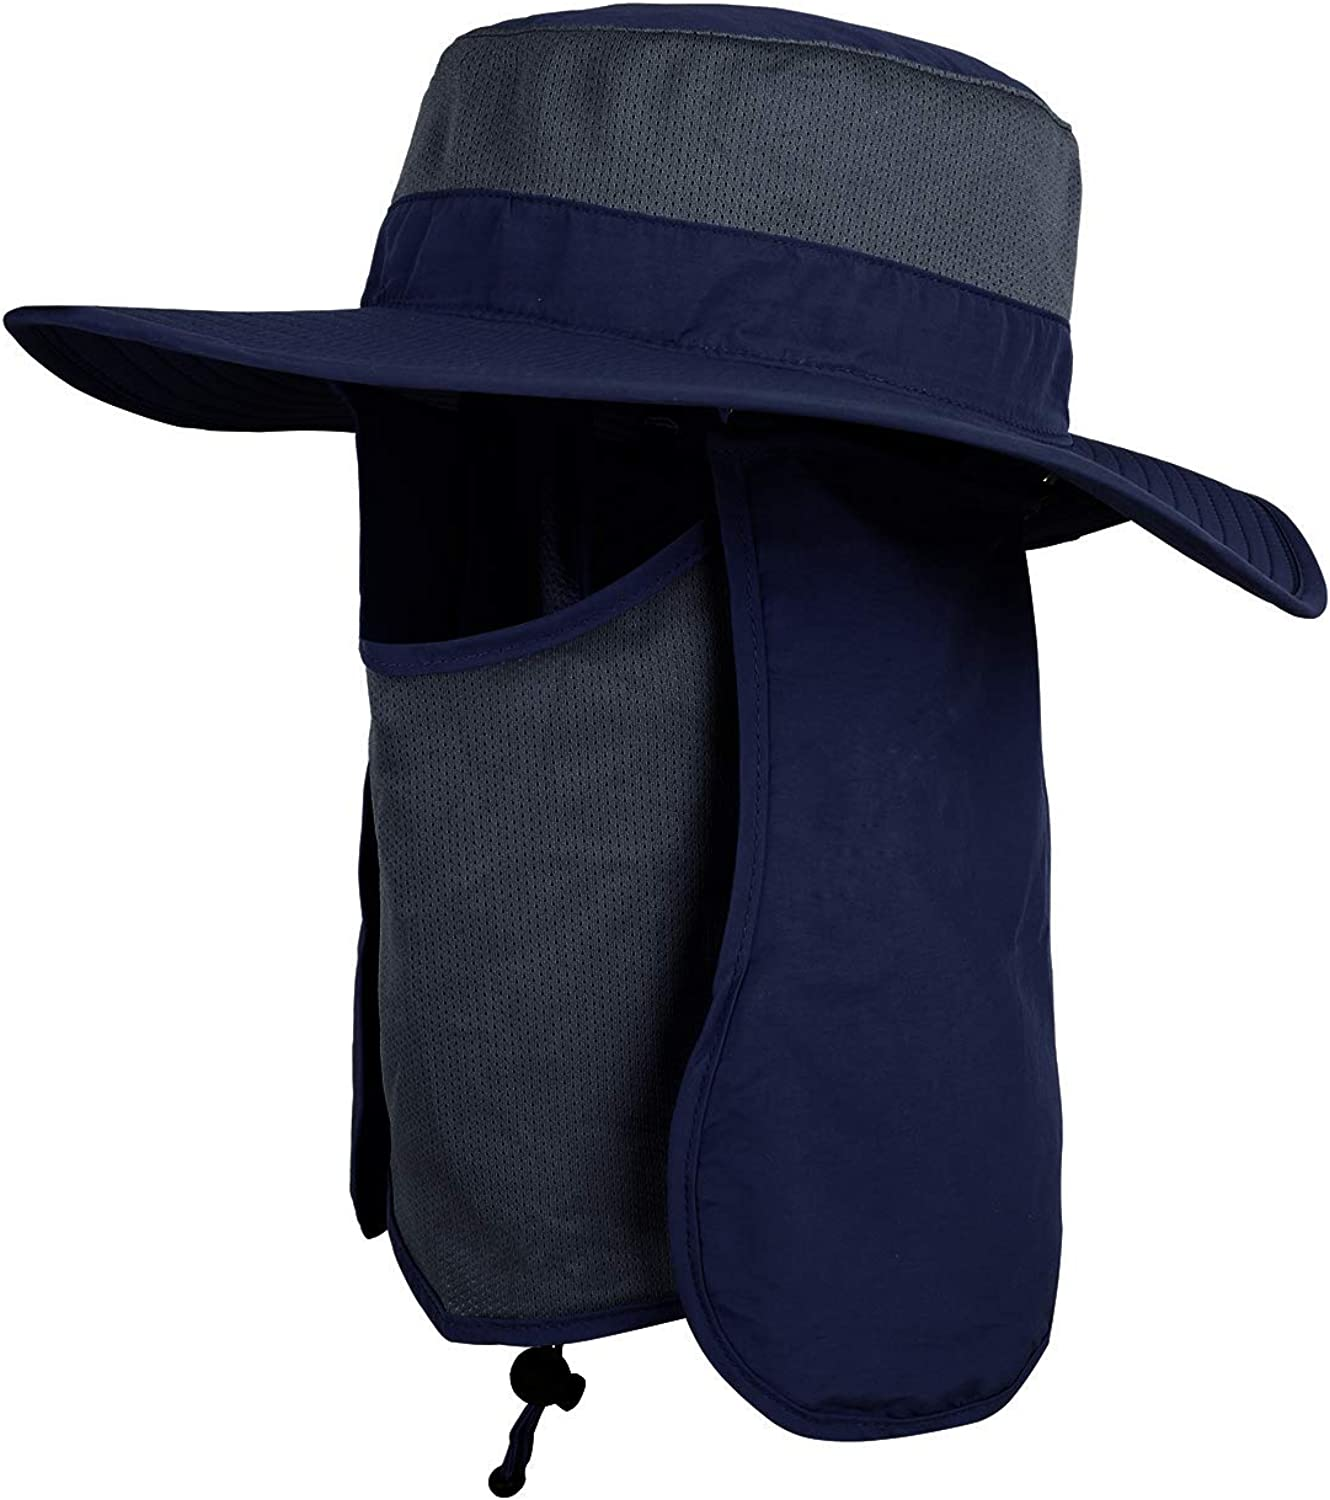 Orolay Unisex Outdoor Hats Wide Brim Sun Hat with Neck Flap Cover UPF 50+